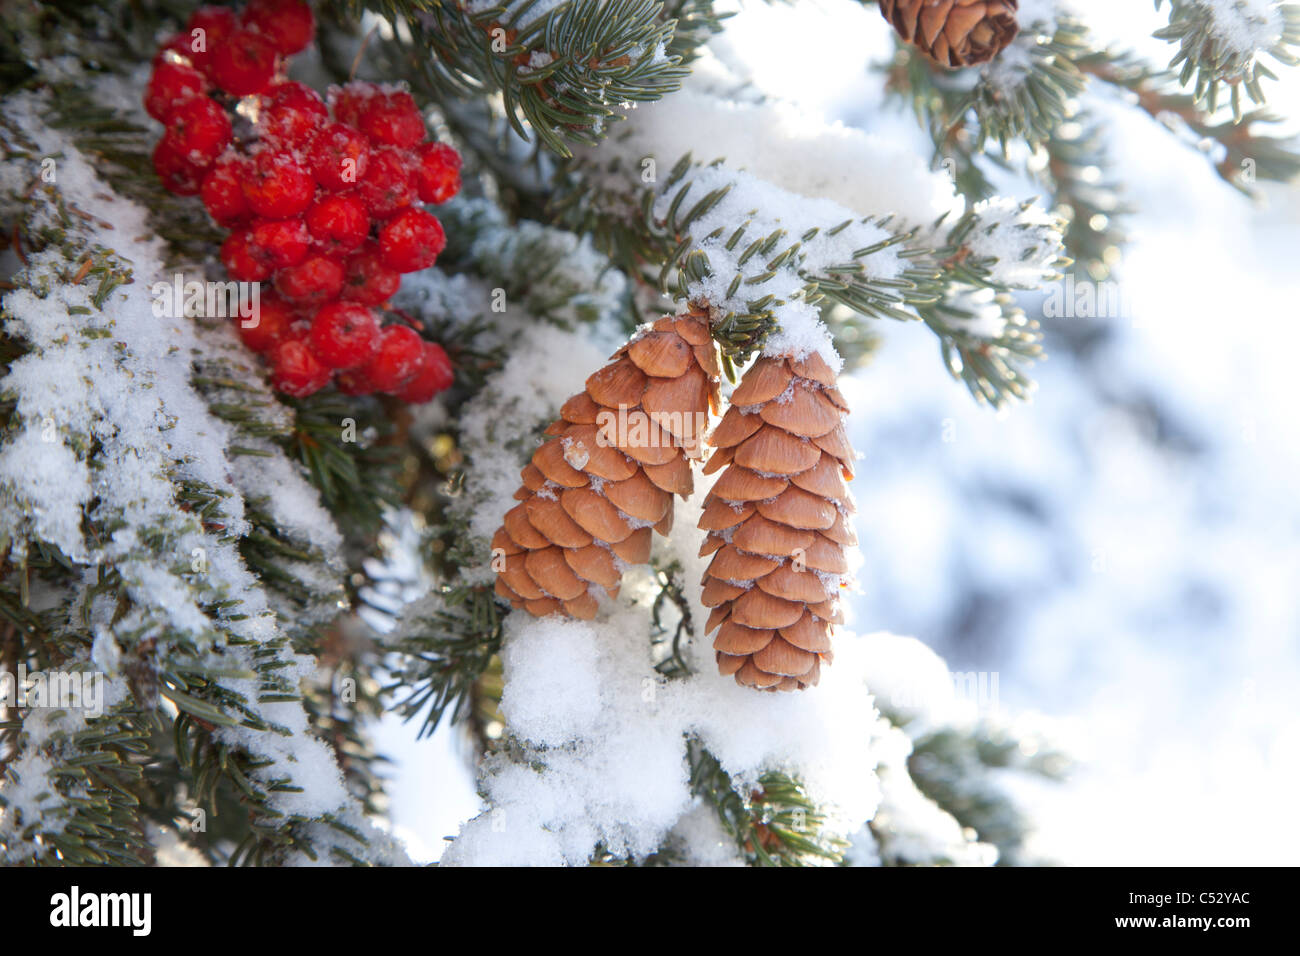 Close up of Red Elderberries and cones on snow-covered evergreen tree, Alaska, Winter - Stock Image